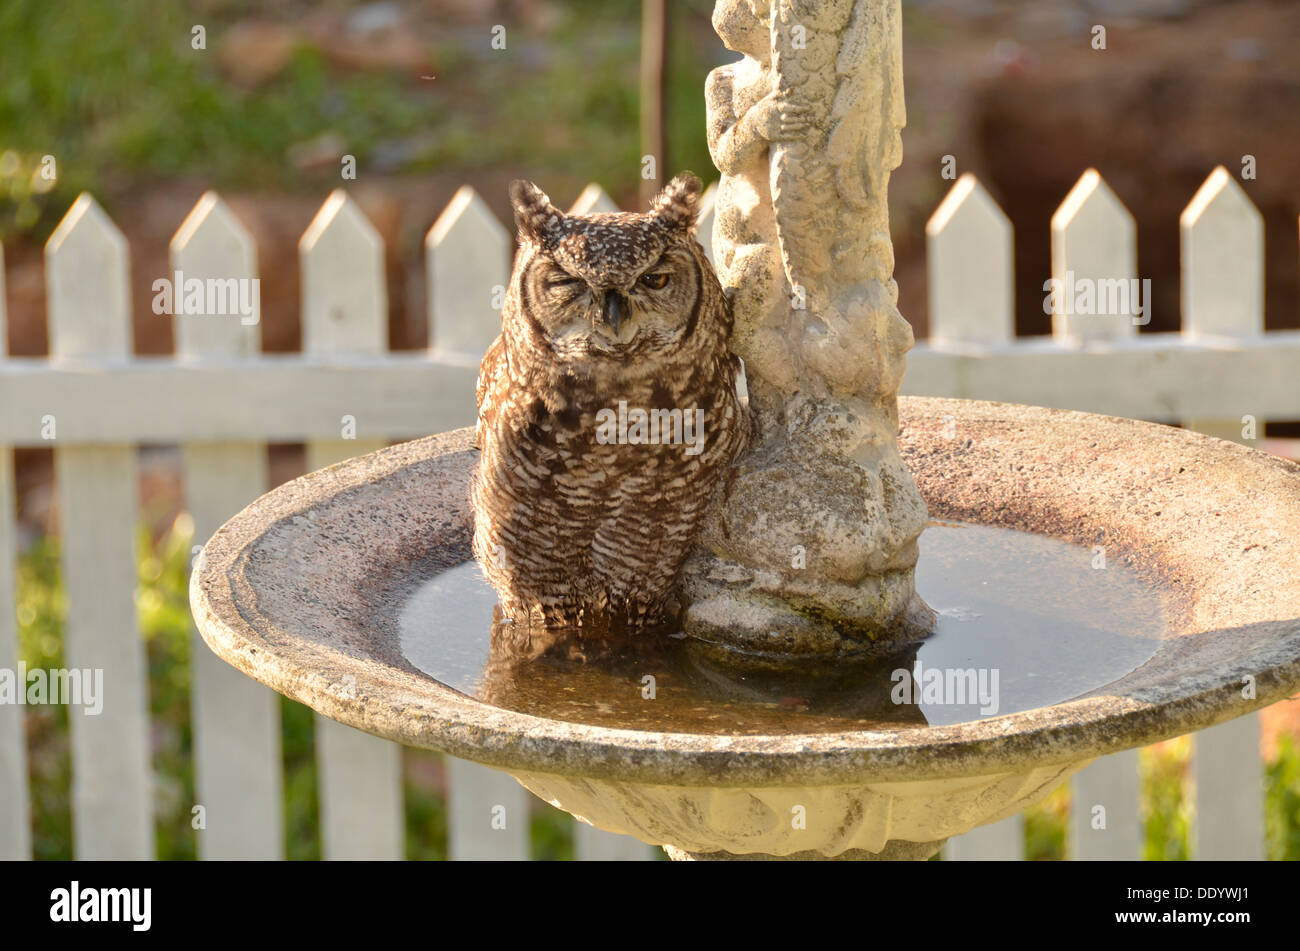 Cape Eagle owl resting in a garden fountain in daylight Stock Photo ...